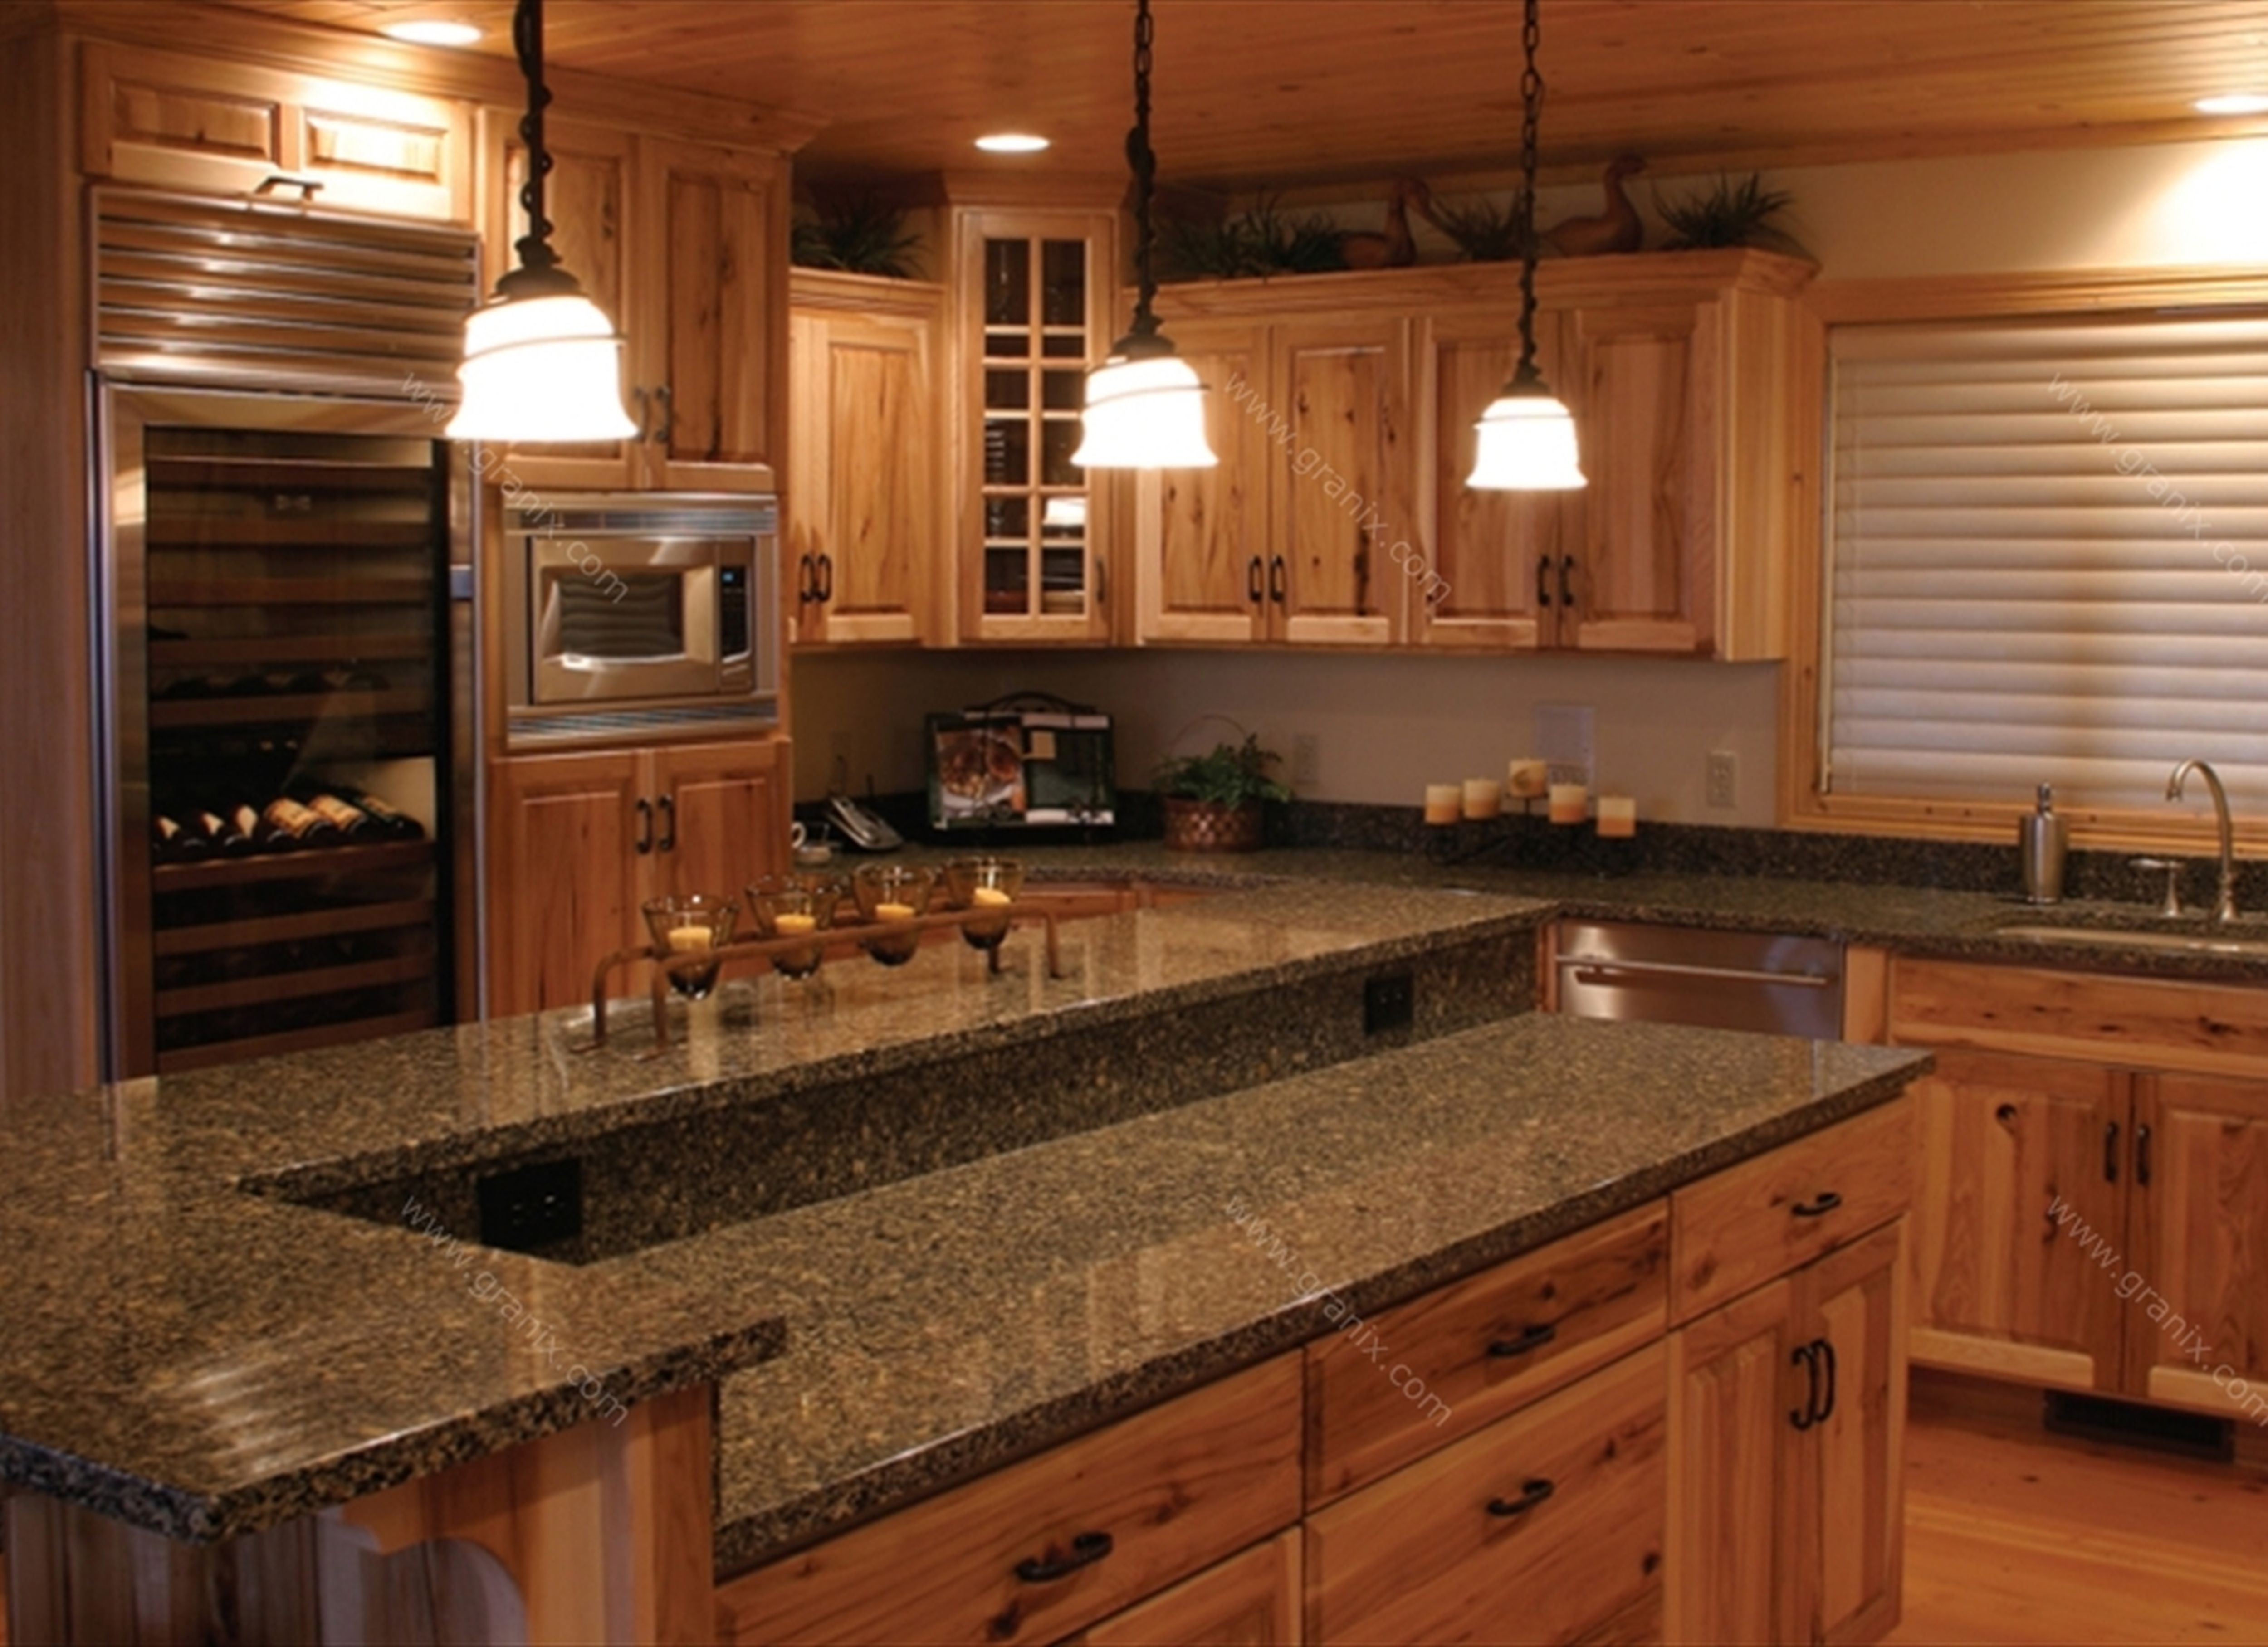 Cozy Lowes Quartz Countertops for Your Kitchen Design